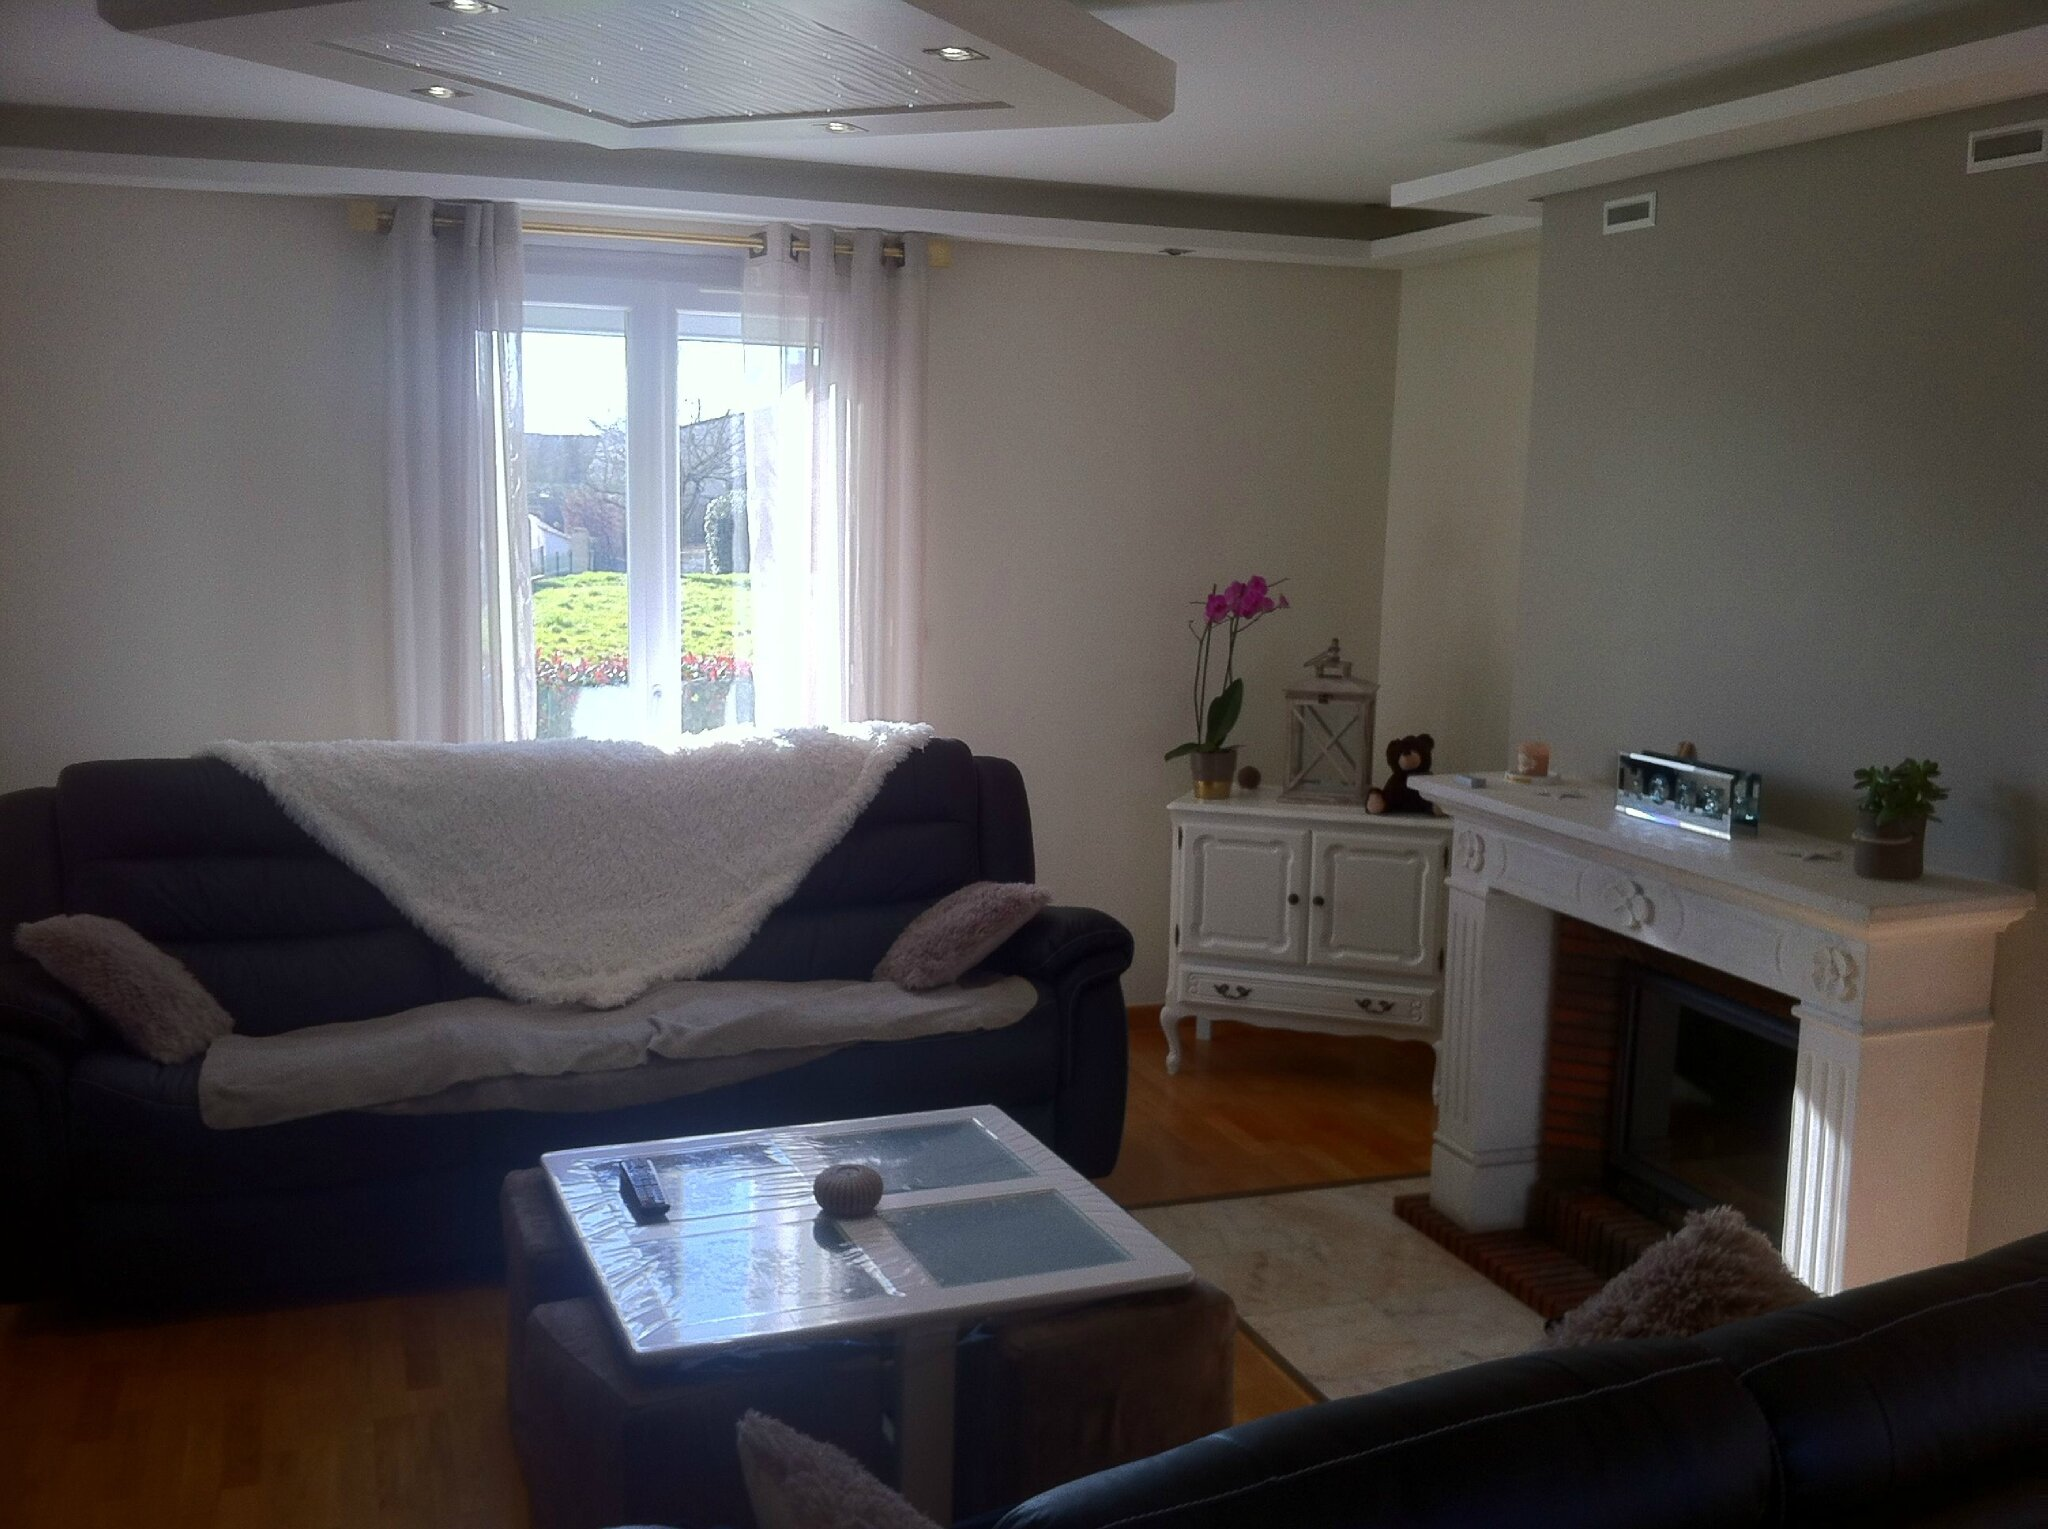 Rénovation d\'un salon : ambiance chaleureuse, cosy. - Album photos ...